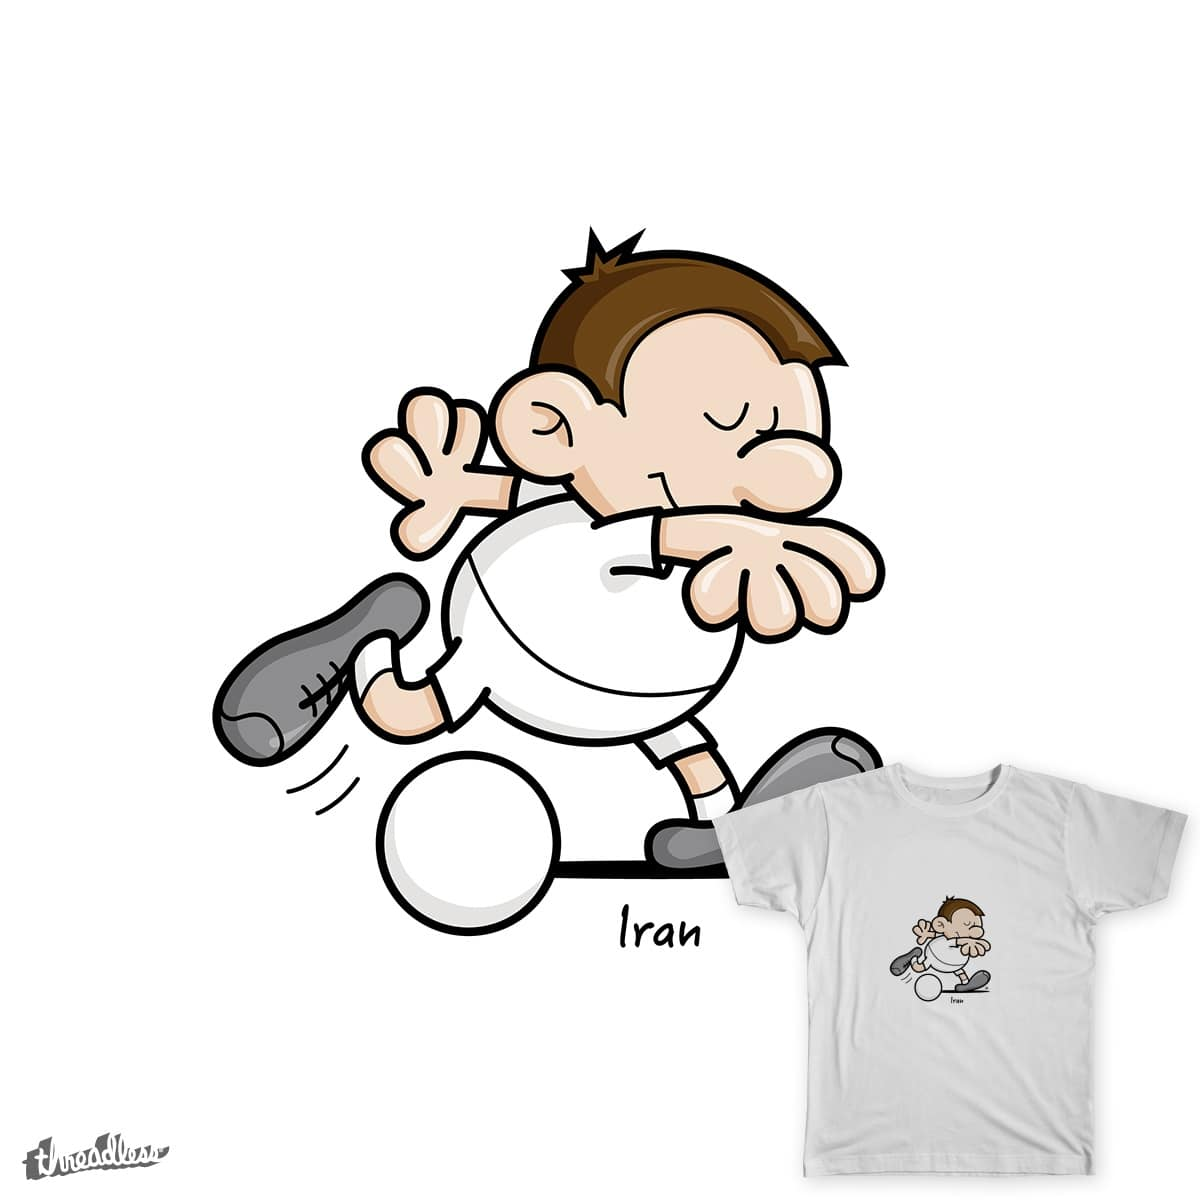 2014 World Cup Cartoons - Iran by spaghettiarts on Threadless